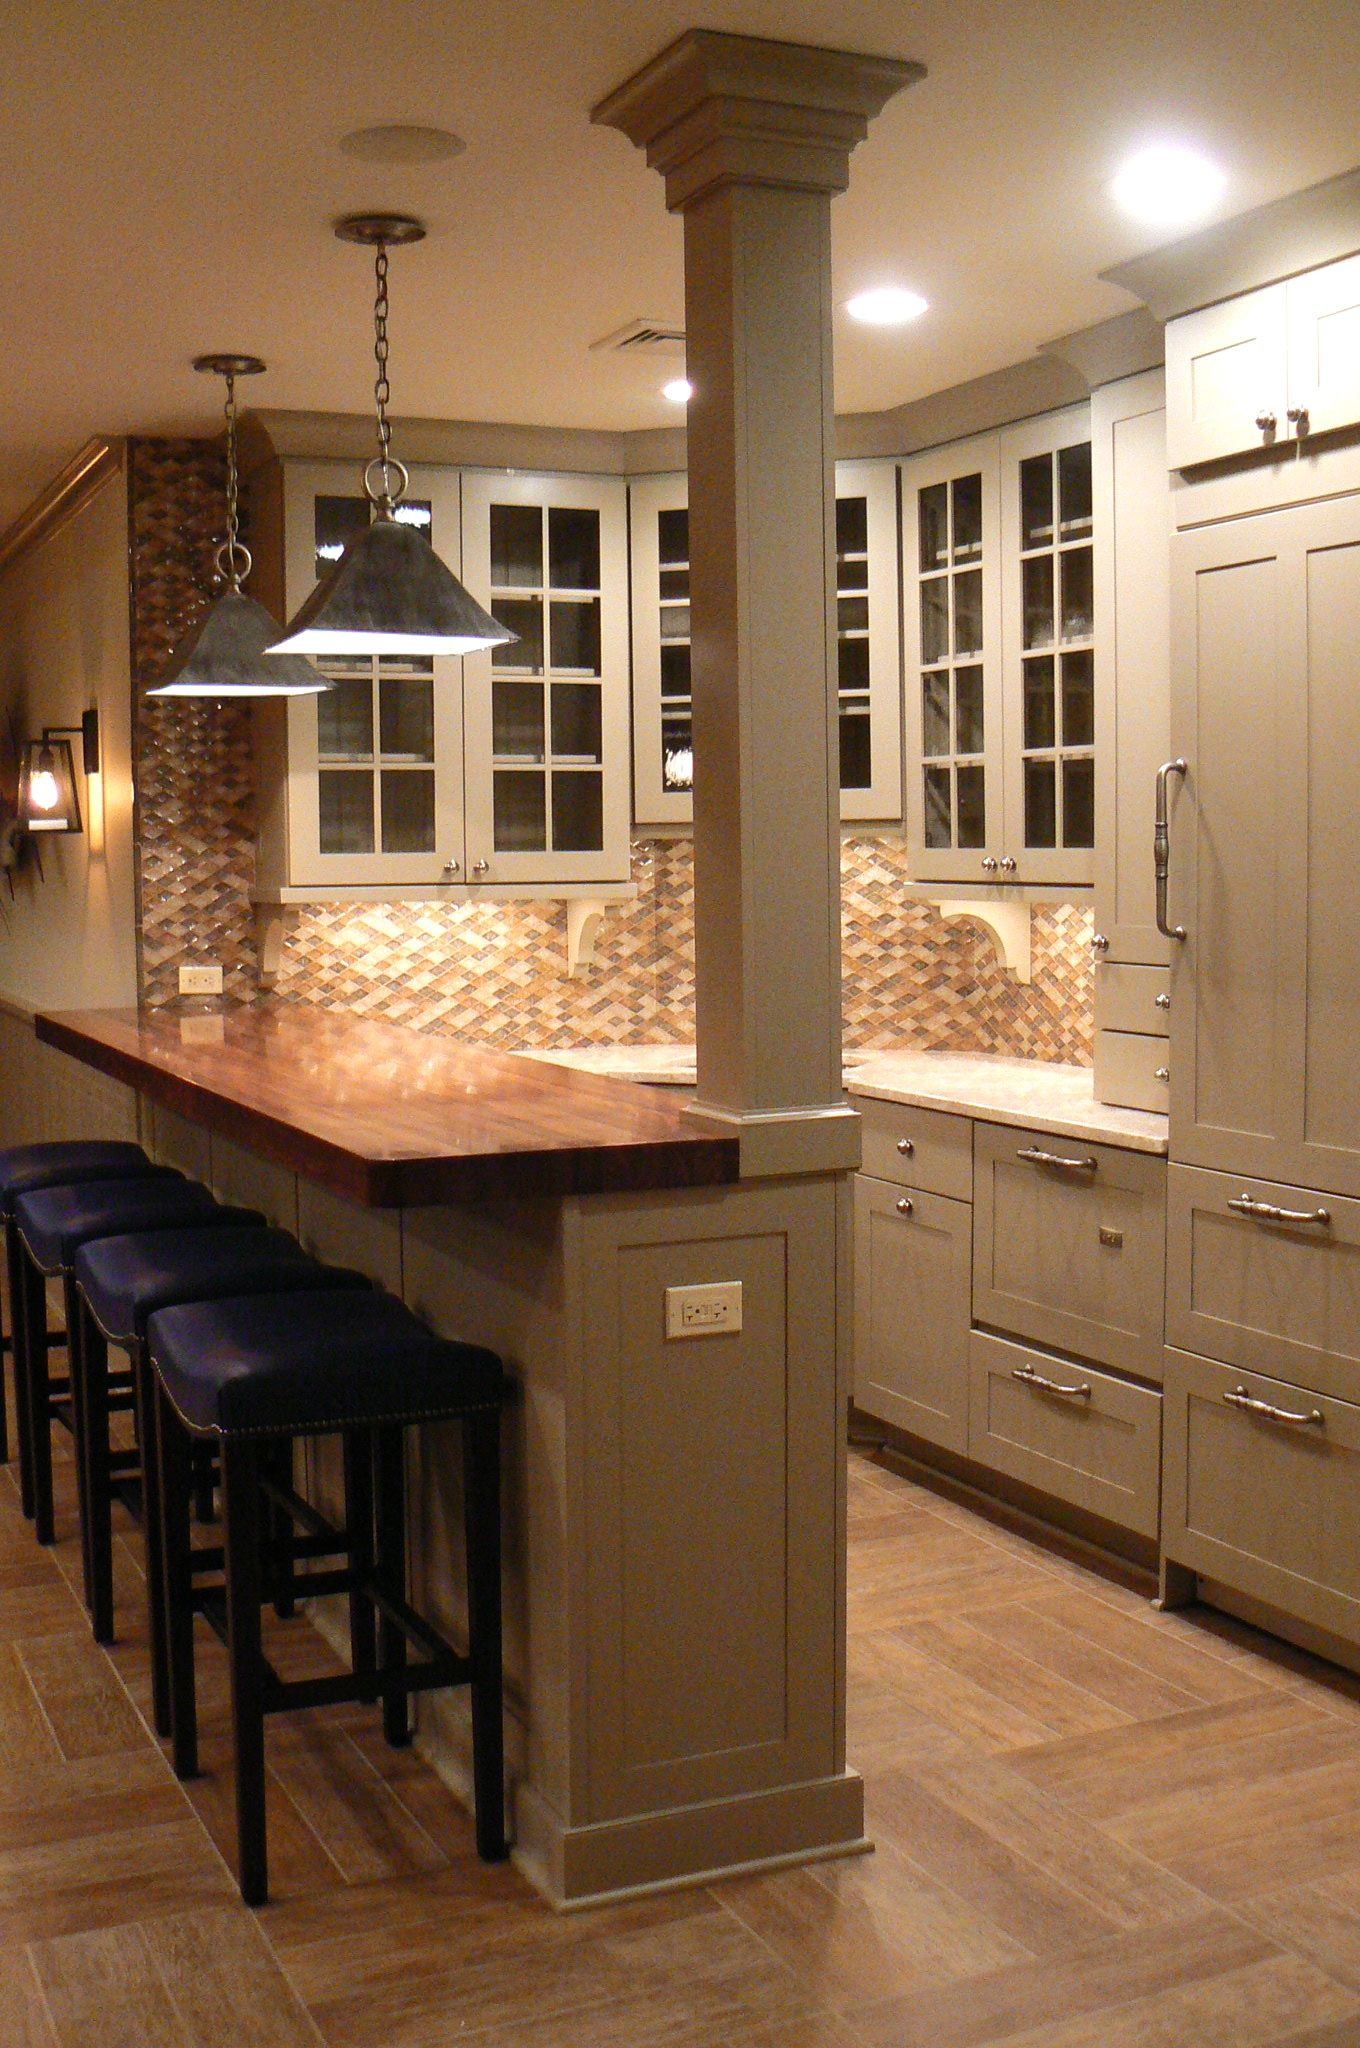 Like The Wood Bar Top And Colour Of Cabinets And Also Floor   Is That  Hardwood Or Tile? More